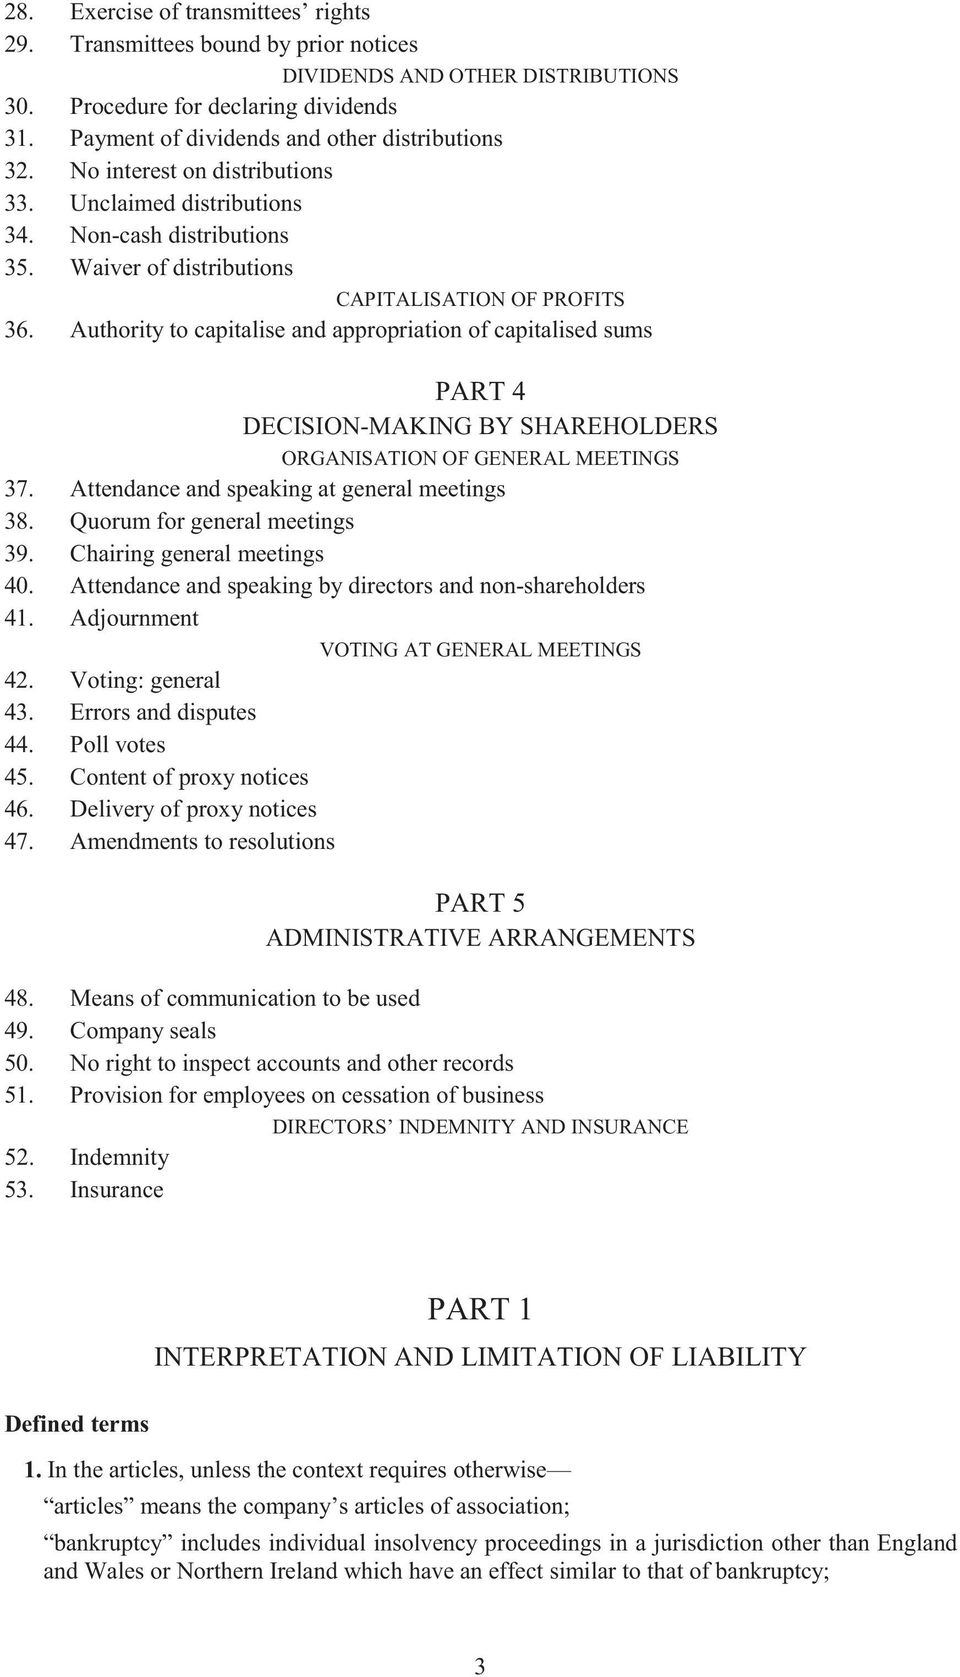 Authority to capitalise and appropriation of capitalised sums PART 4 DECISION-MAKING BY SHAREHOLDERS ORGANISATION OF GENERAL MEETINGS 37. Attendance and speaking at general meetings 38.